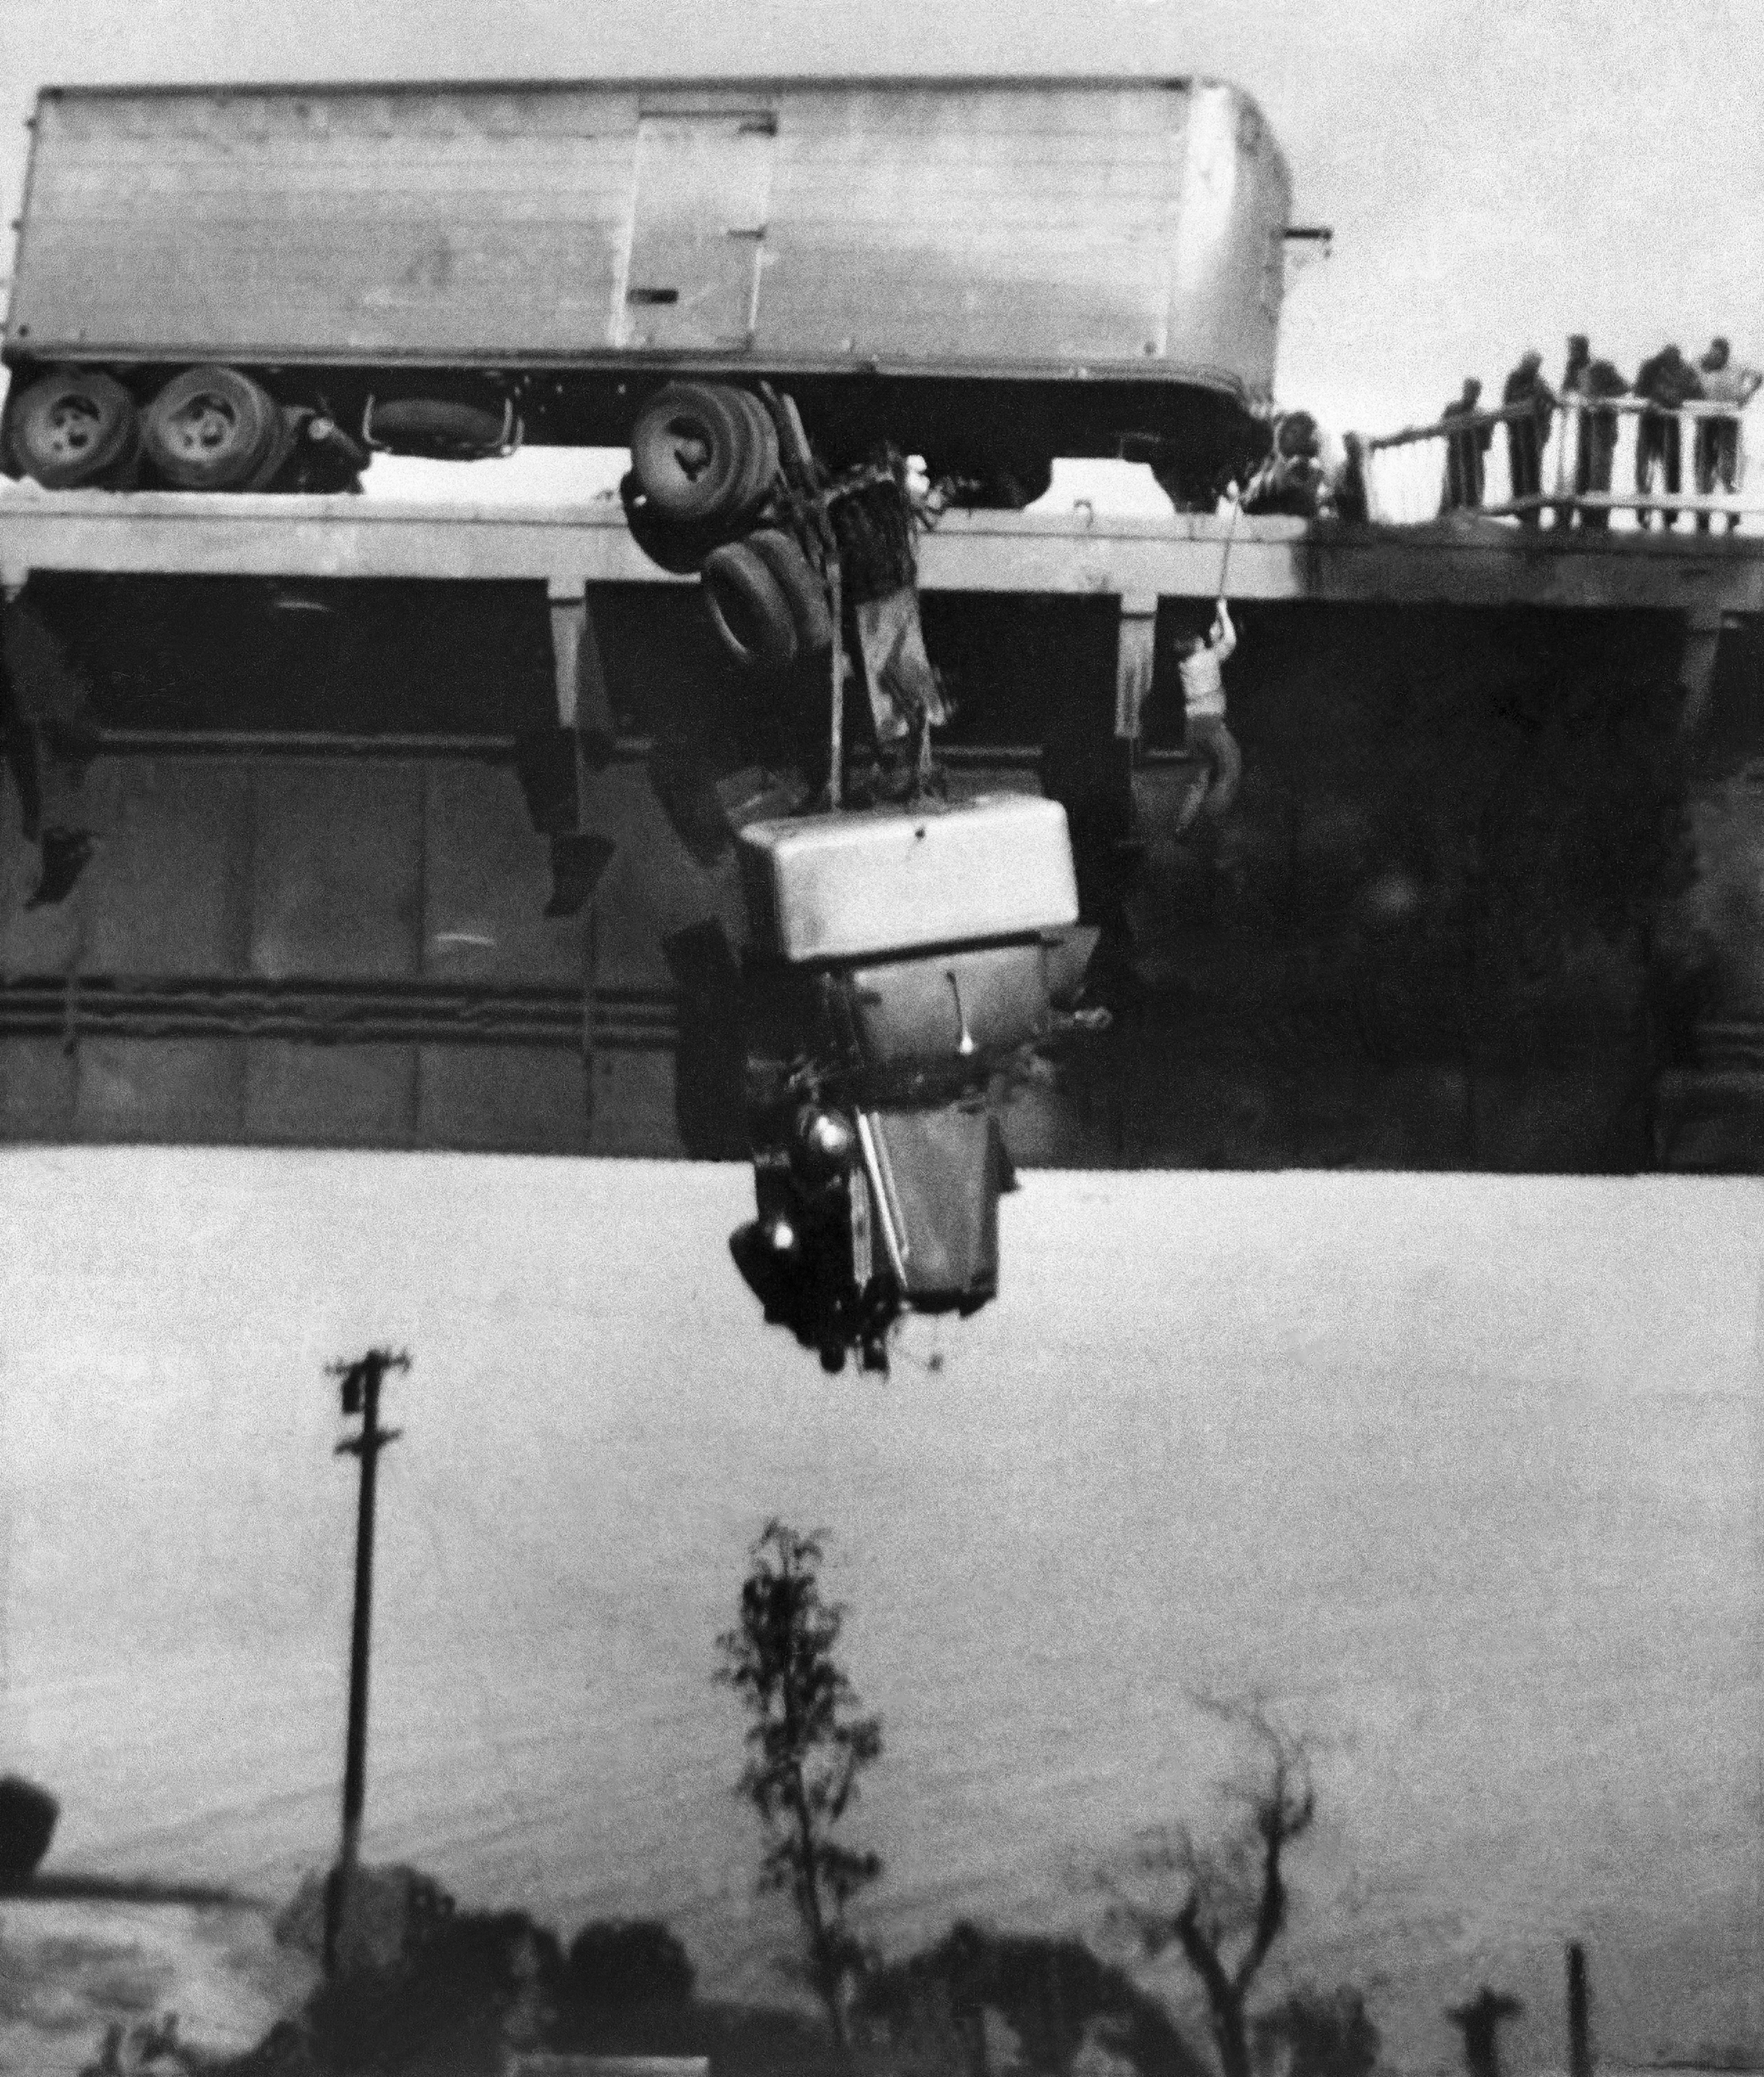 Paul Overby, one of two drivers trapped in the cab of a tractor trailer, is pulled to safety by a rope on the Pit River Bridge across Shasta Lake near Redding, Calif., May 3, 1953. Both Overby and co-driver Hank Baum were rescued before the cab burned and fell to the rocks below. Virginia Schau, an amateur photographer, used a Kodak Brownie camera to shoot the photo. (Virginia Schau via AP)